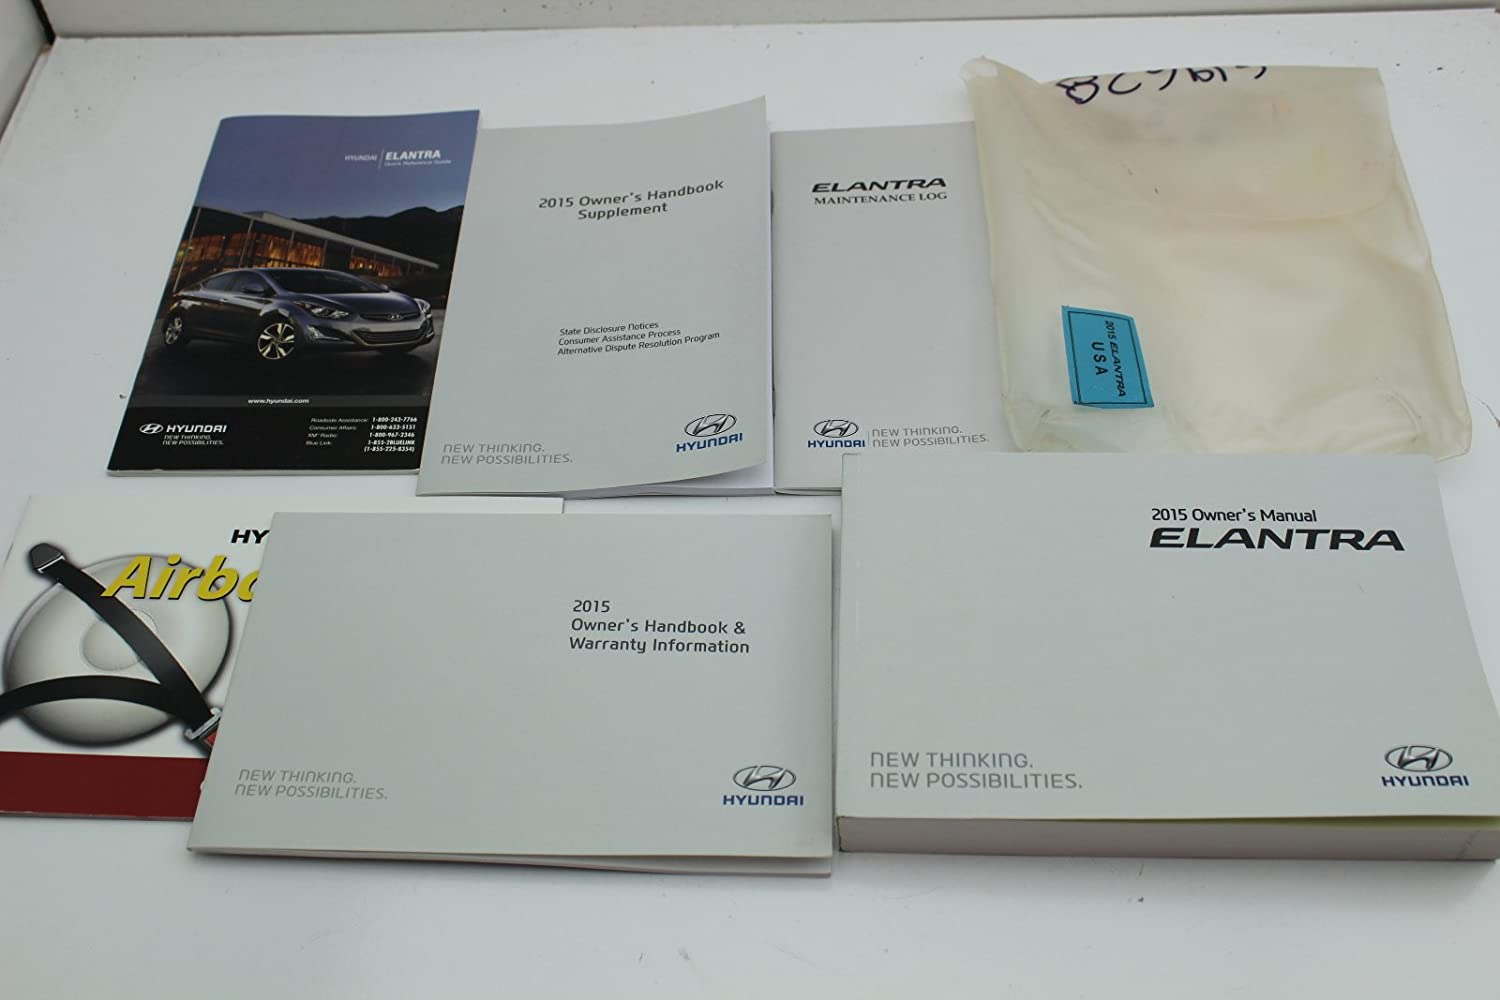 15 Hyundai Elantra Vehicle Owners Manual Handbook Guide Set: Amazon